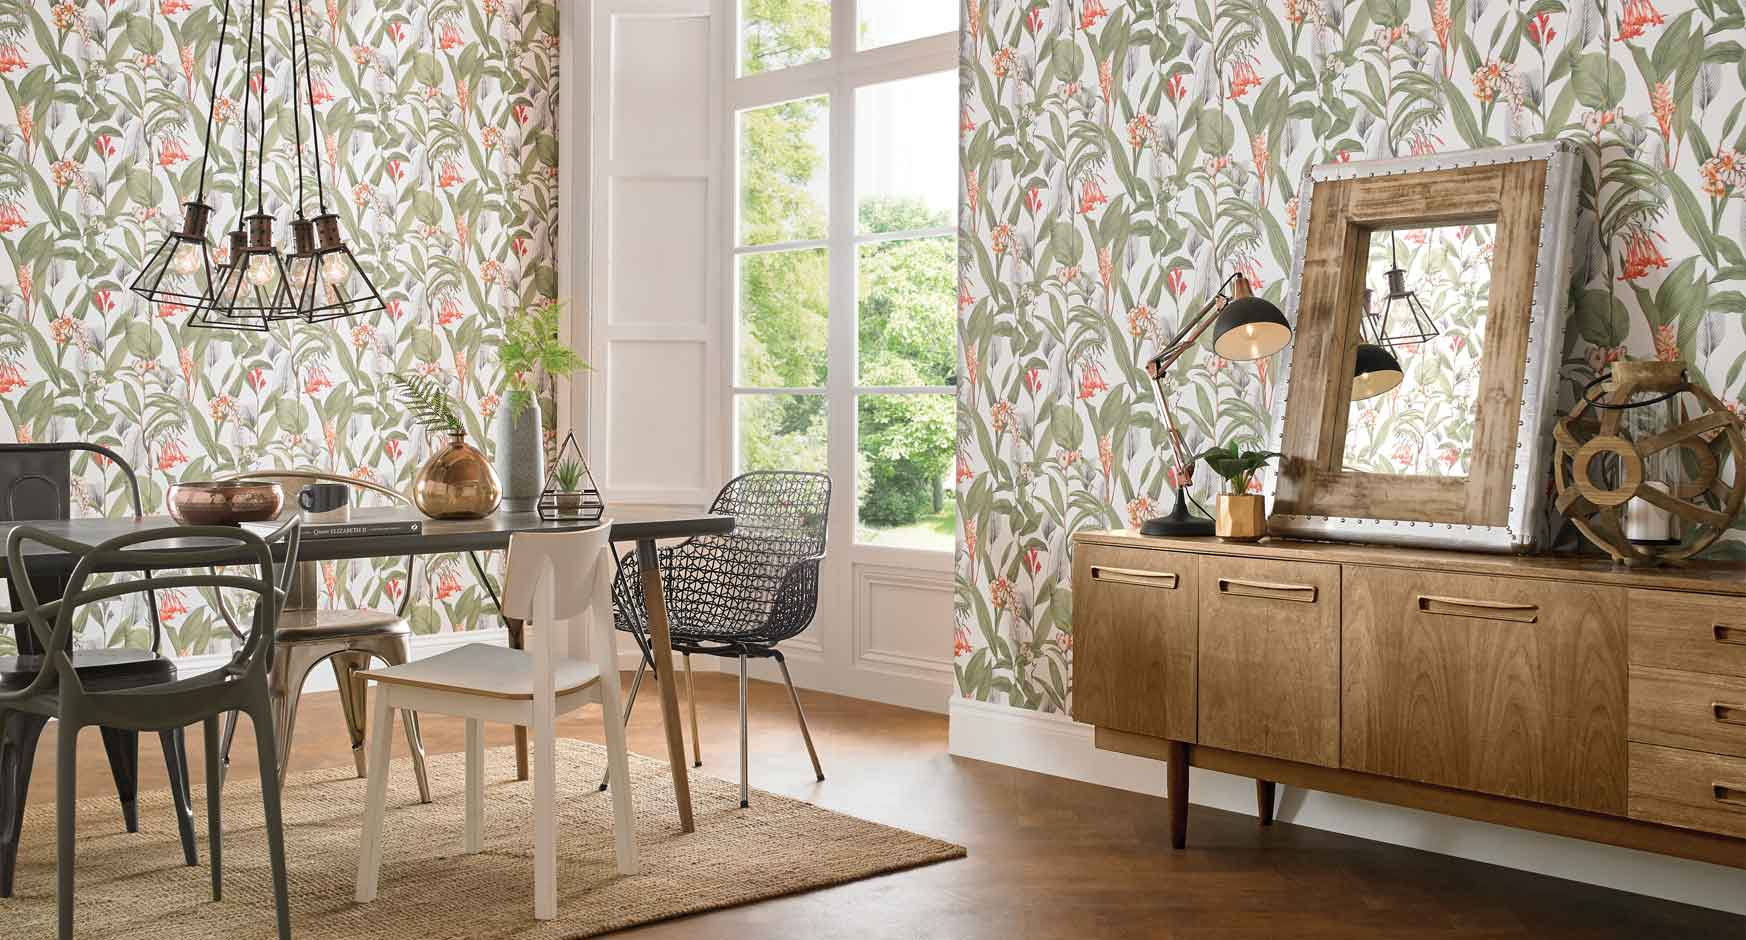 Dining room wallpaper dining room feature wall ideas for Dining room wallpaper